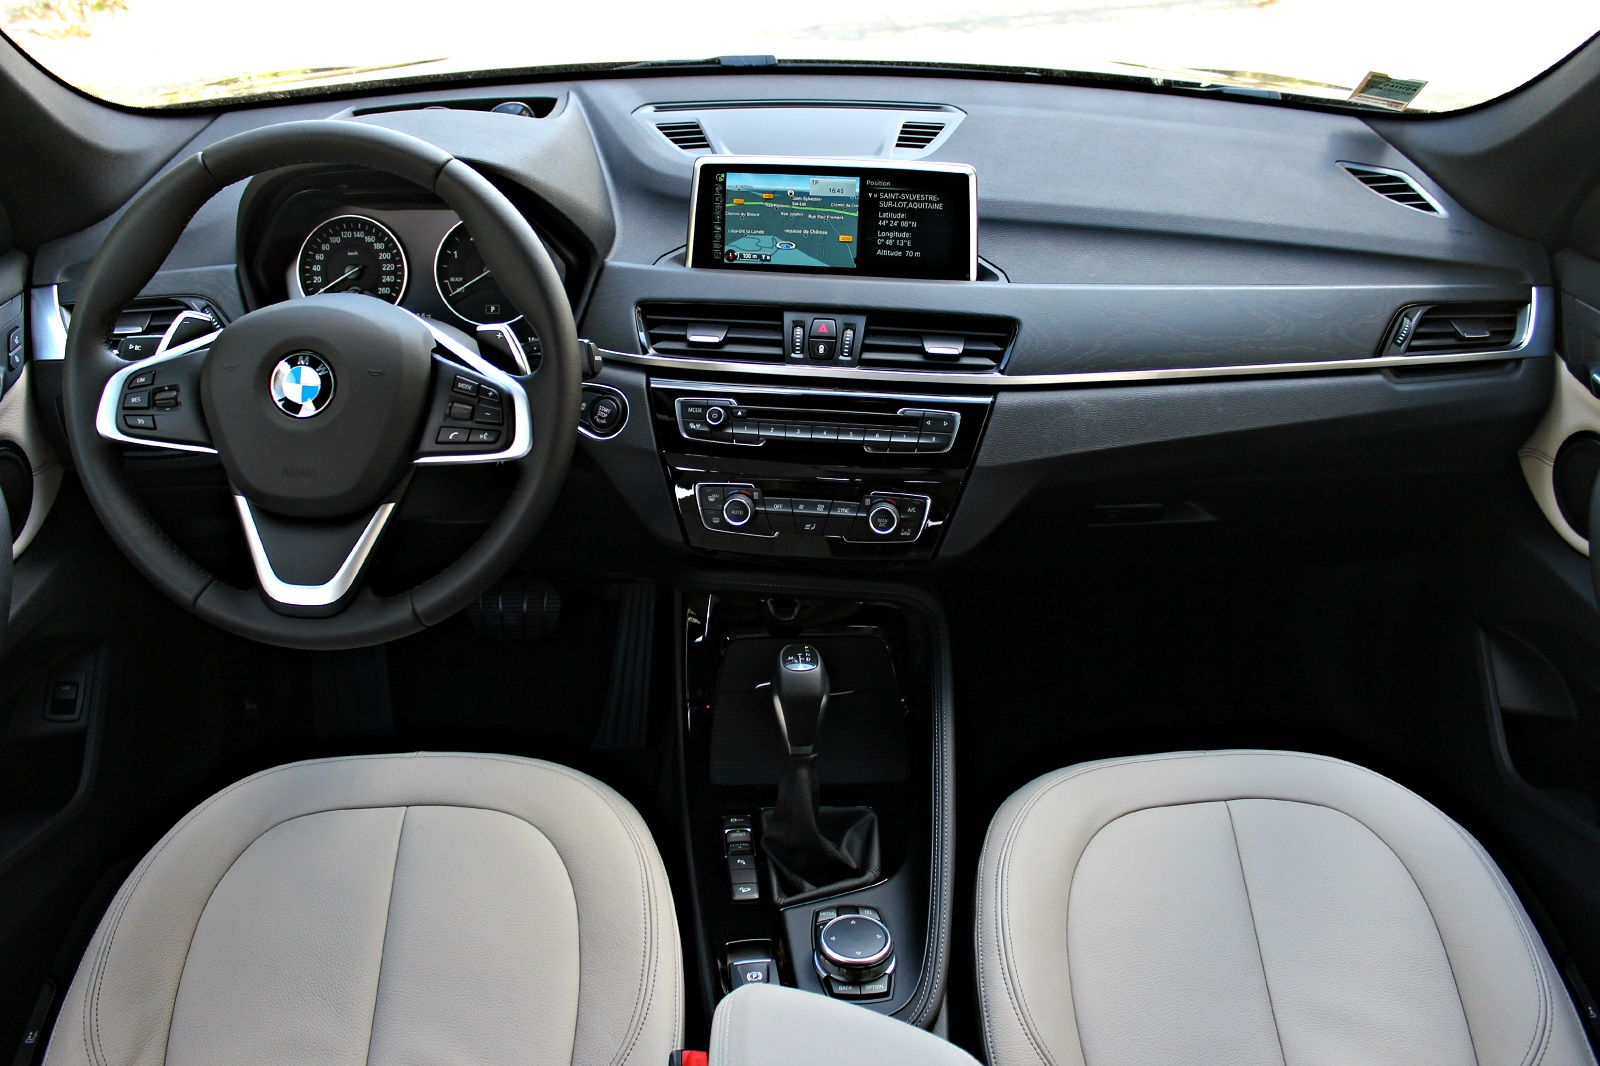 essai vid o bmw x1 retour en force. Black Bedroom Furniture Sets. Home Design Ideas